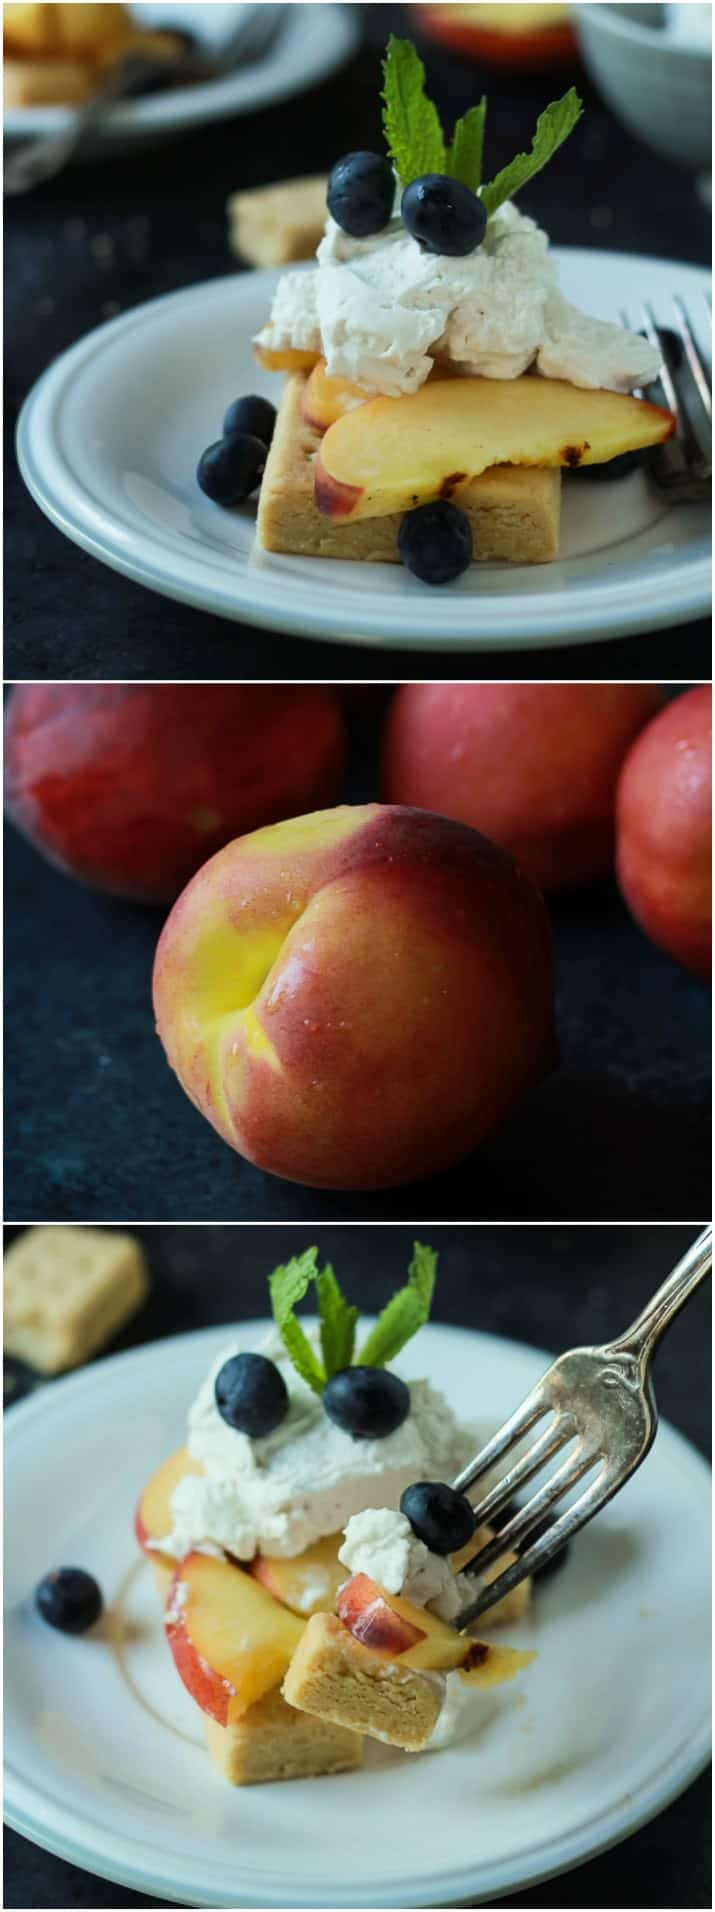 Collage of fresh peaches and servings of Grilled Peach Shortcake on a plate